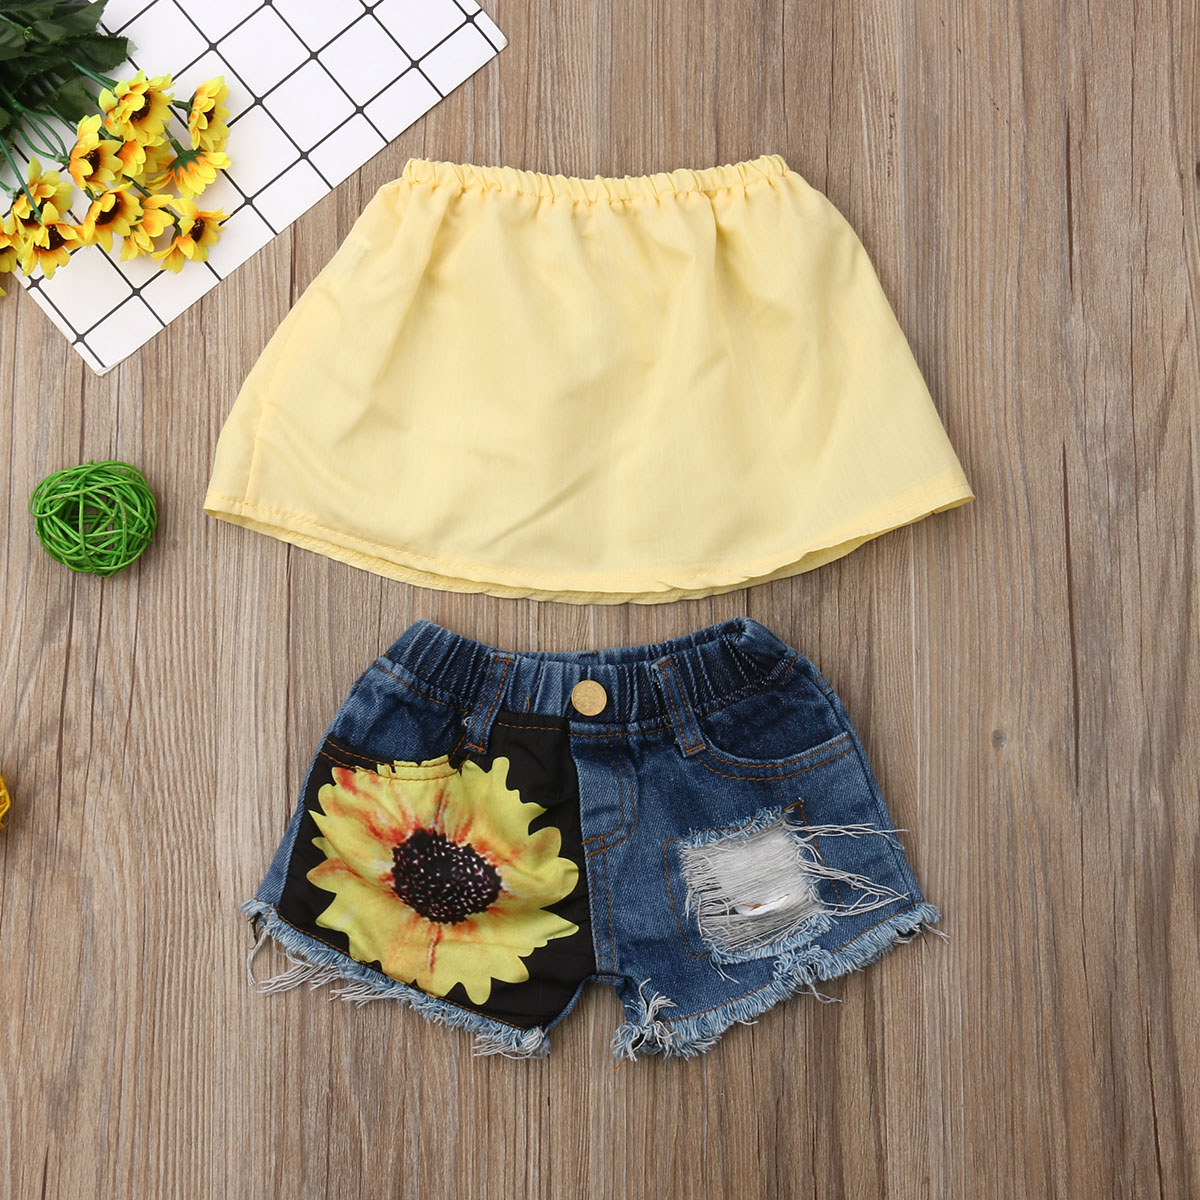 Emmababy Summer Toddler Baby Girl Clothes Off Shoulder Cropped Tops Ripped Denim Sunflower Short Pants 2Pcs Outfits Casual Set